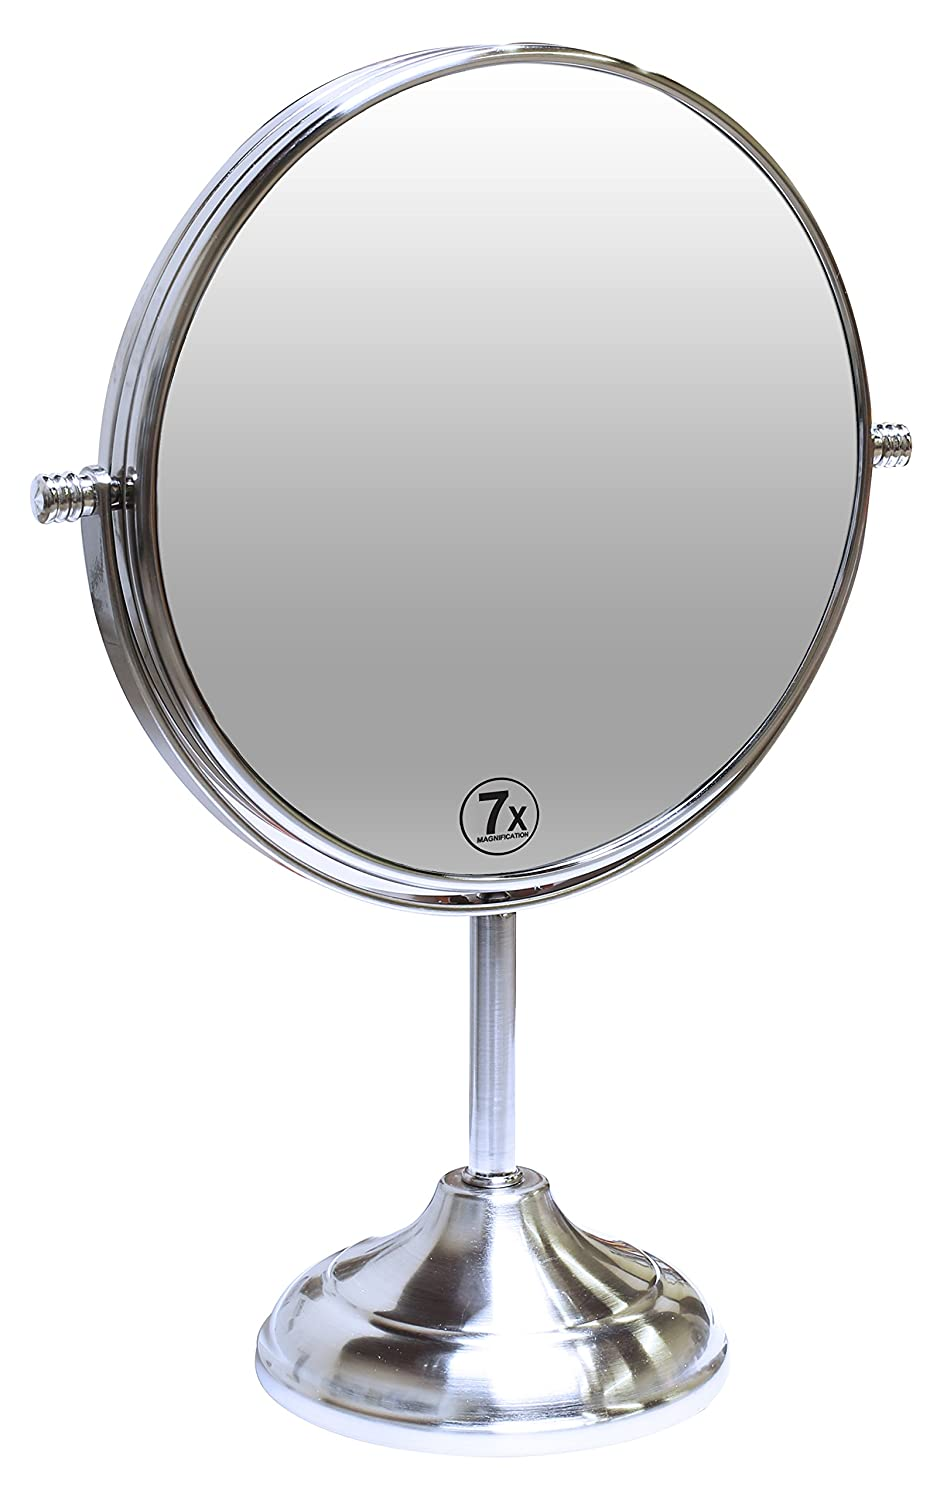 Decobros 8-inch LARGE Tabletop Two-sided Swivel Vanity Mirror with 7x Magnification, 13-inch Height Deco Brothers MM-007-1